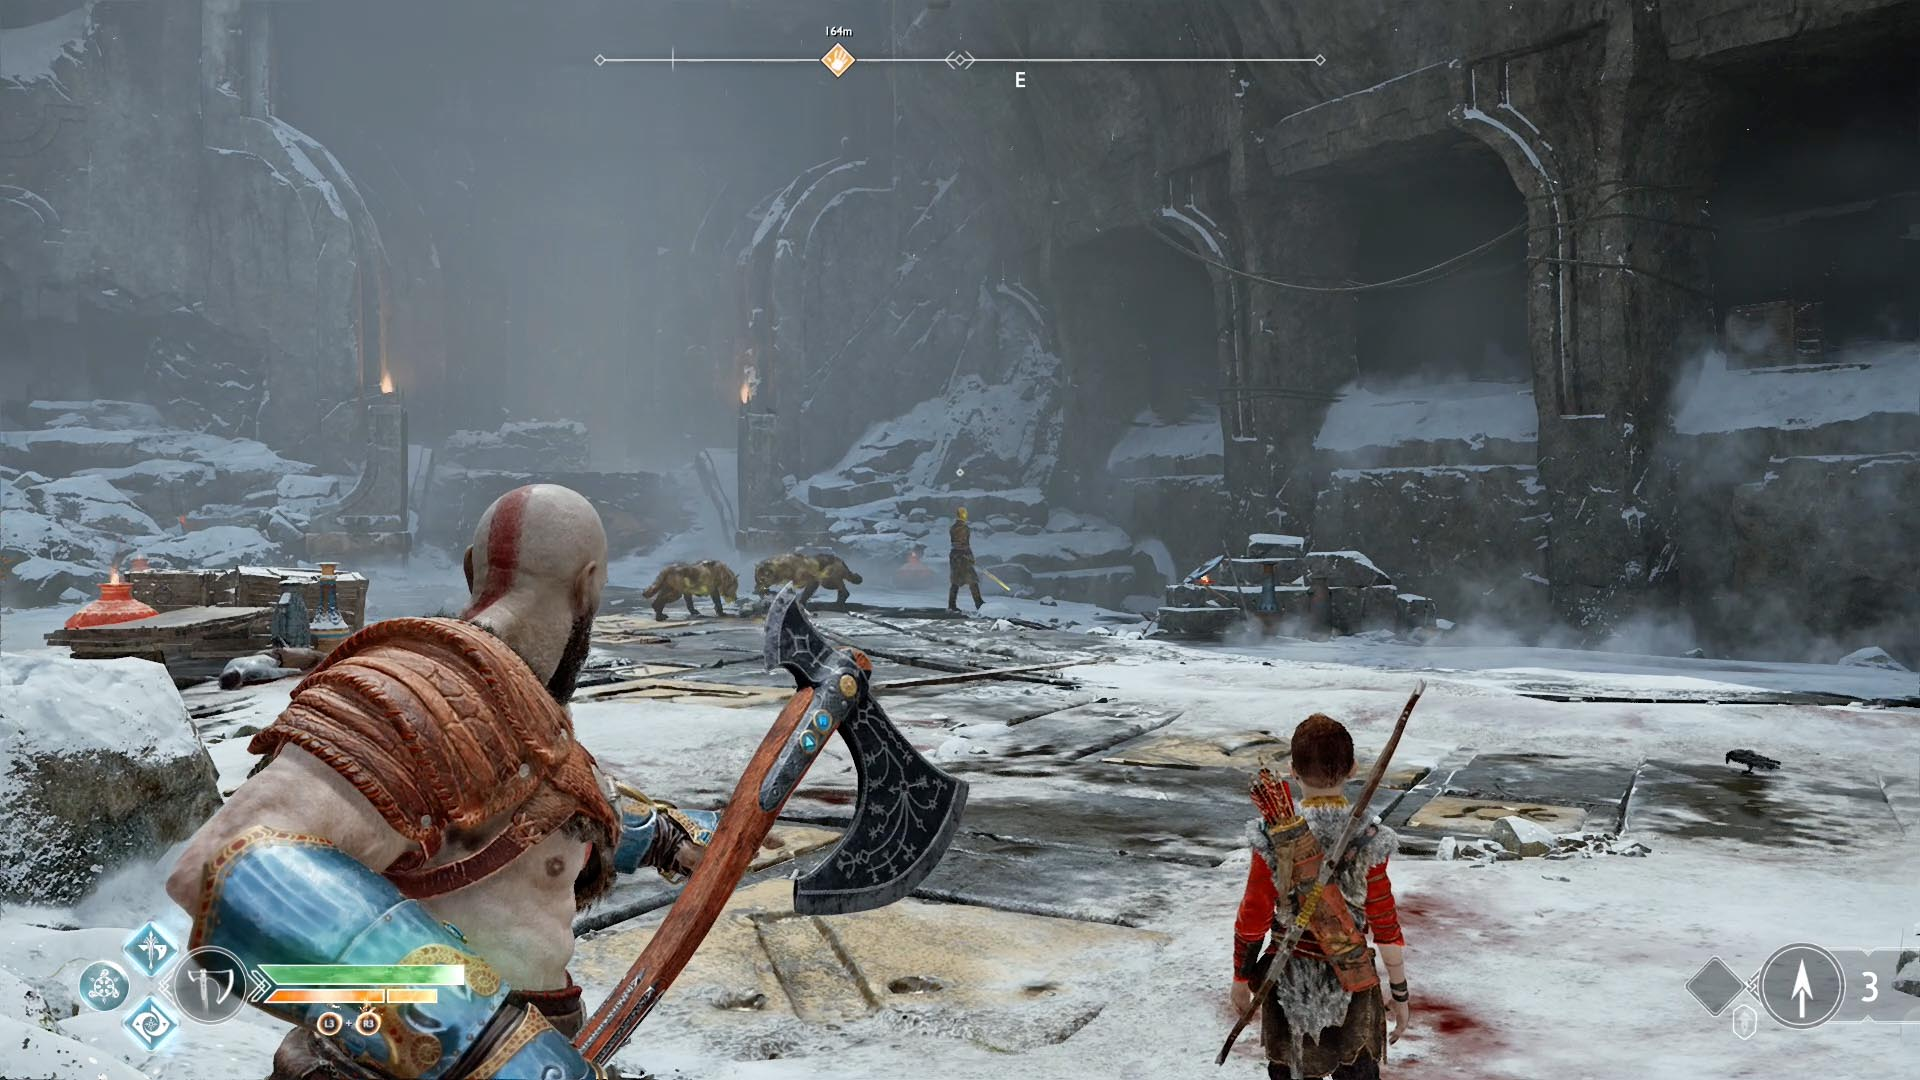 God of War guide: Foothills and Mountain's Base walkthrough